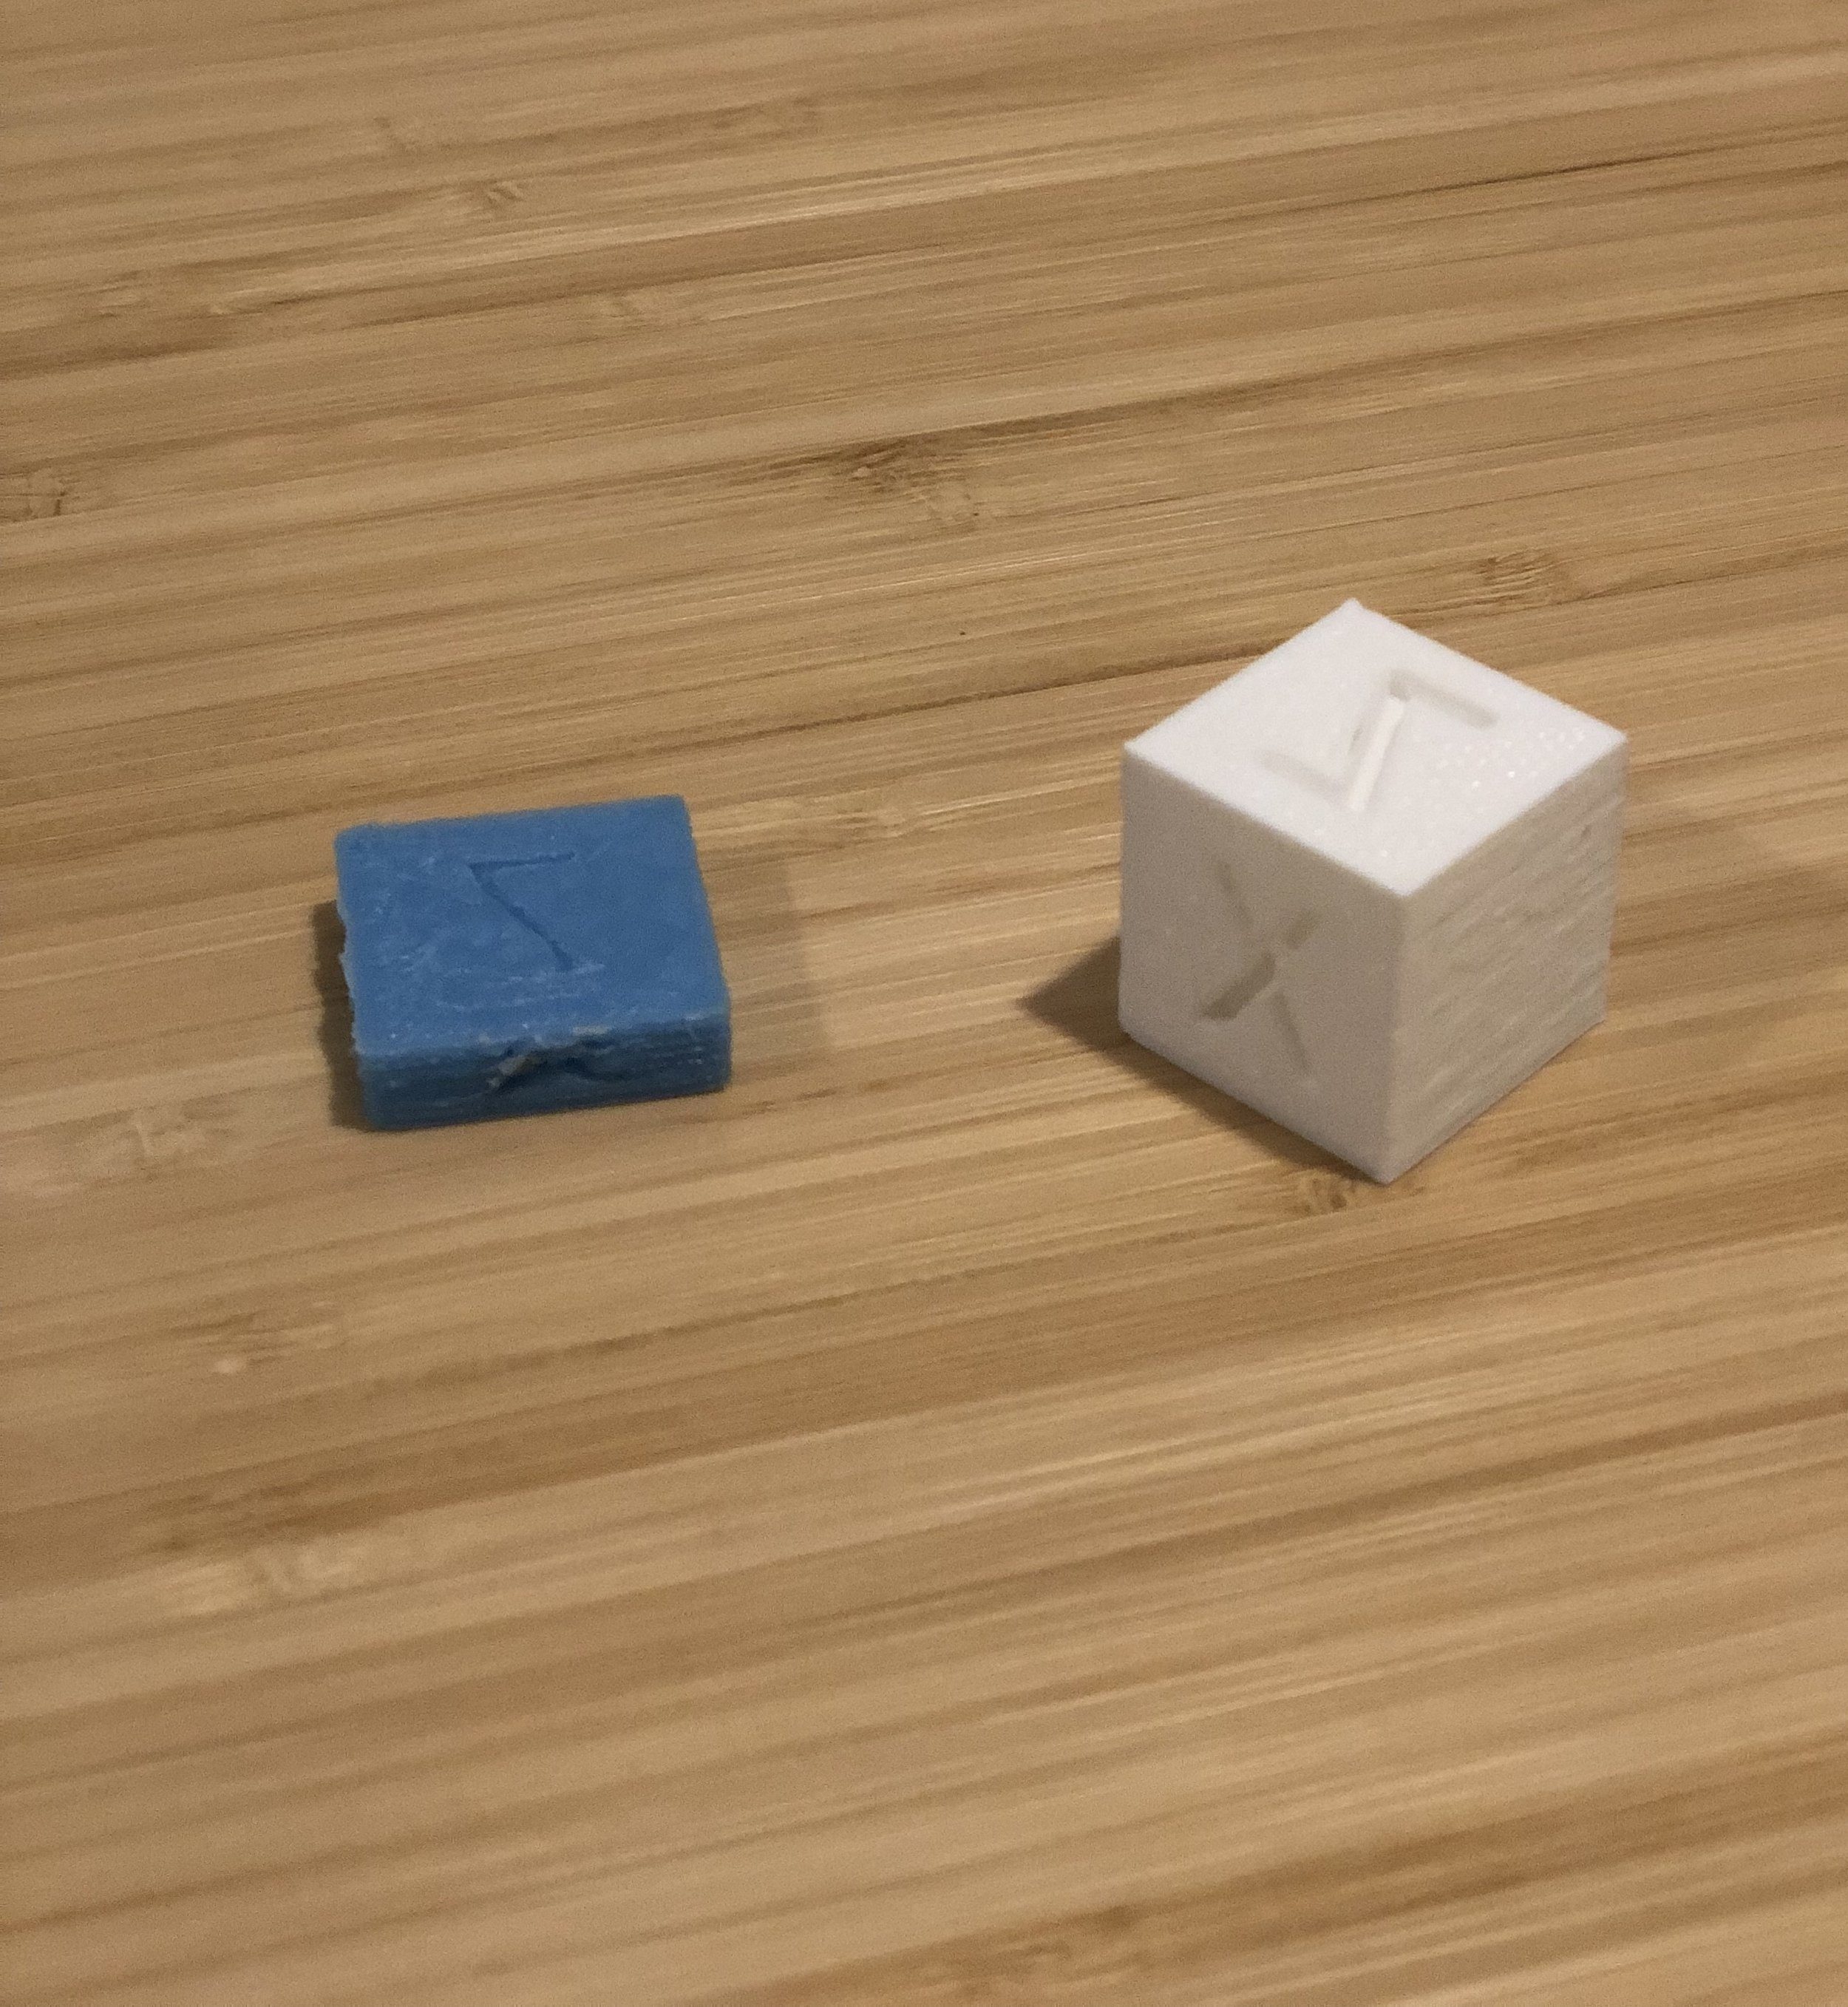 The white cube on the right is in the right range, dimensionally (20mm^3). The blue one on the left is 20mmx20mmx6mm.